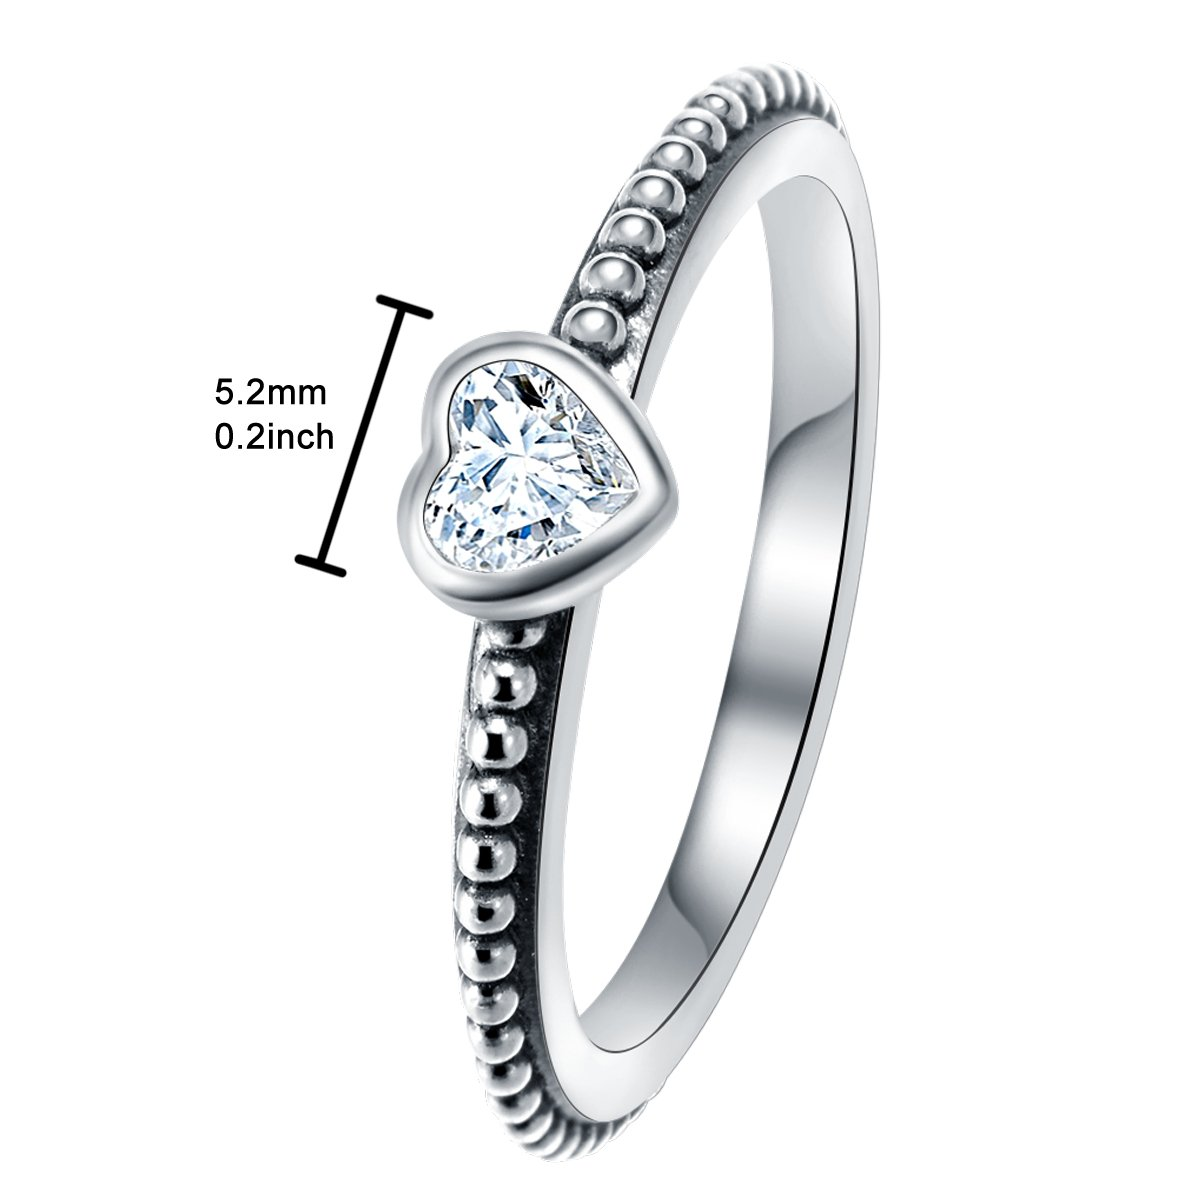 Changeable Solitaire Promise Rings - White Crystals, Solid 925 Sterling Silver # Size 6 (Soul Heart) by Changeable (Image #2)